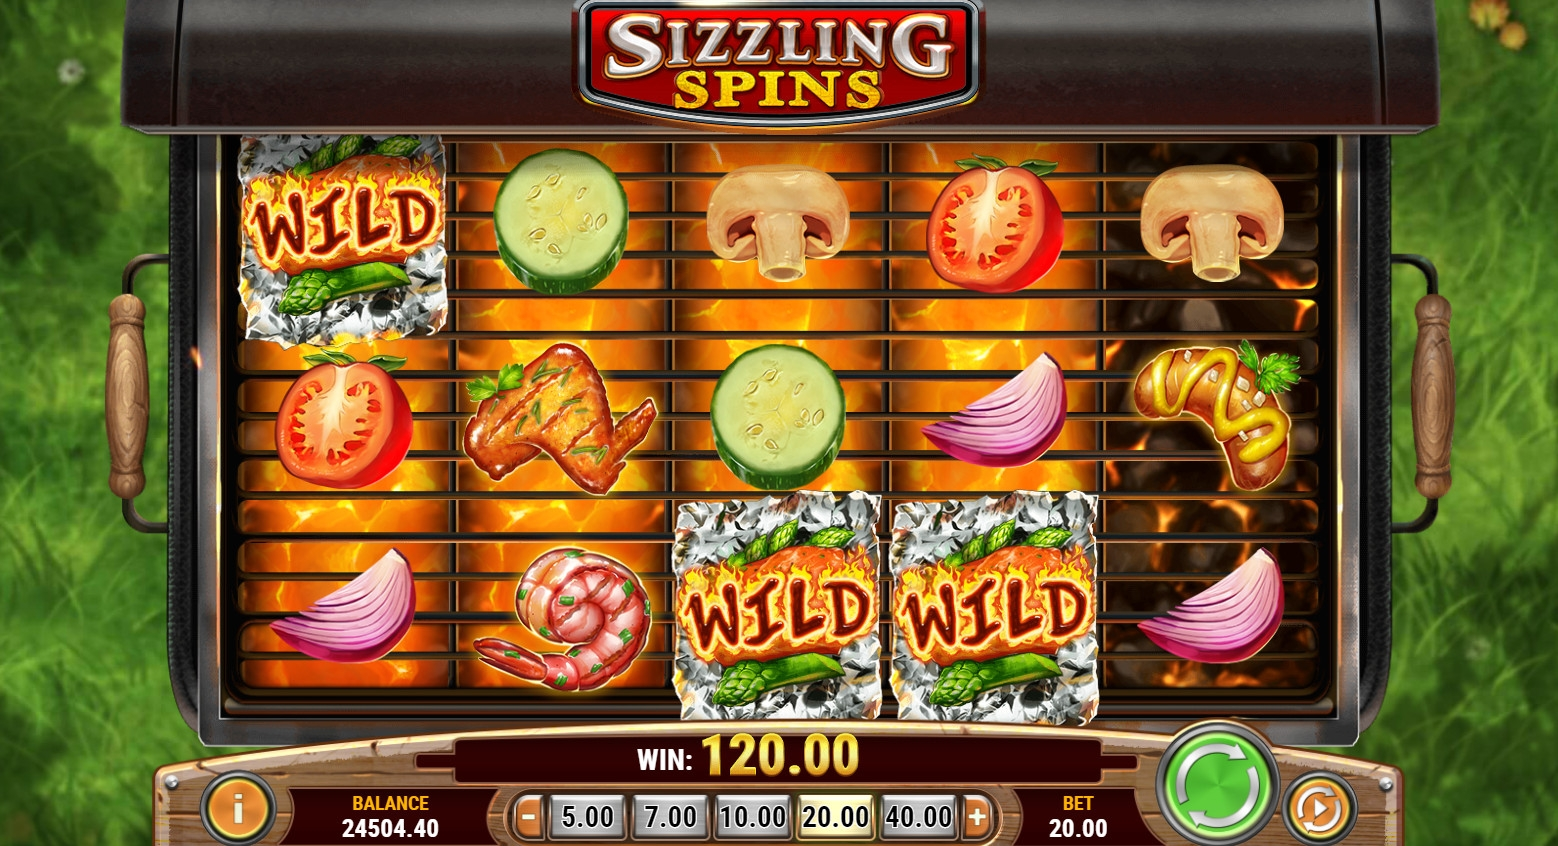 Sizzling Spins (Sizzling Spins) from category Slots